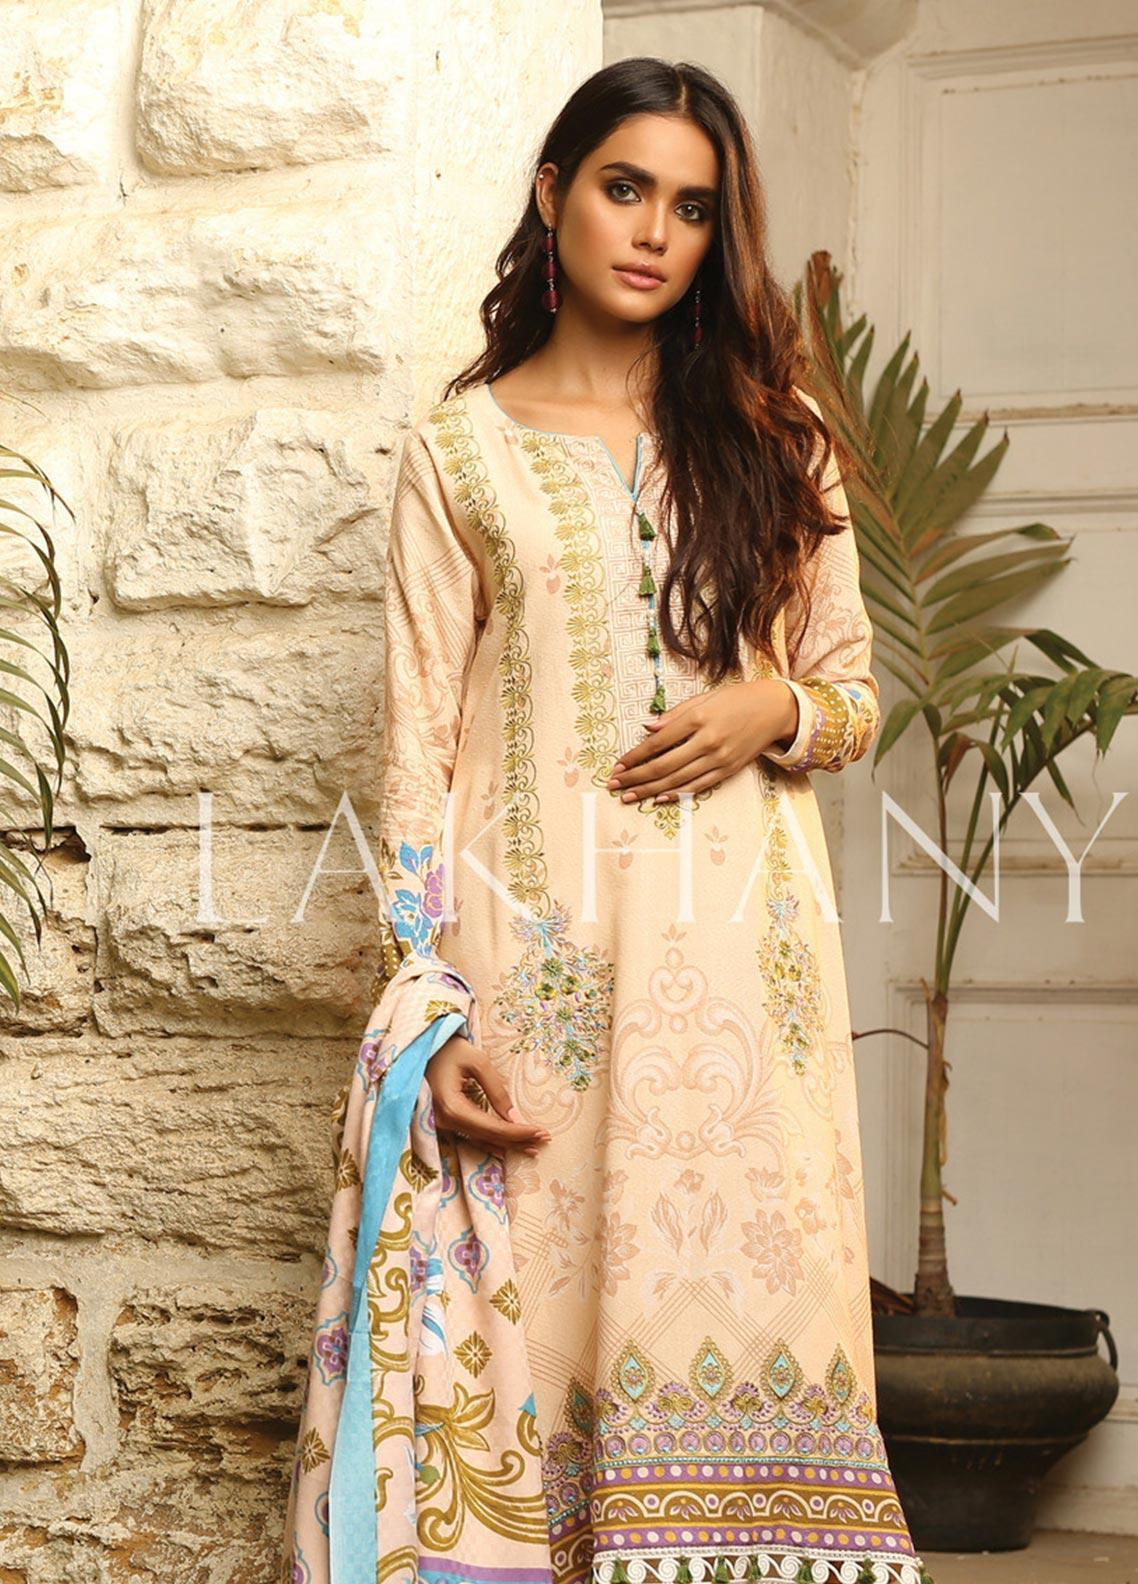 Lsm 18158 B-Embroided 3pc lawn dress with printed chiffon dupatta. - gracestore.pk